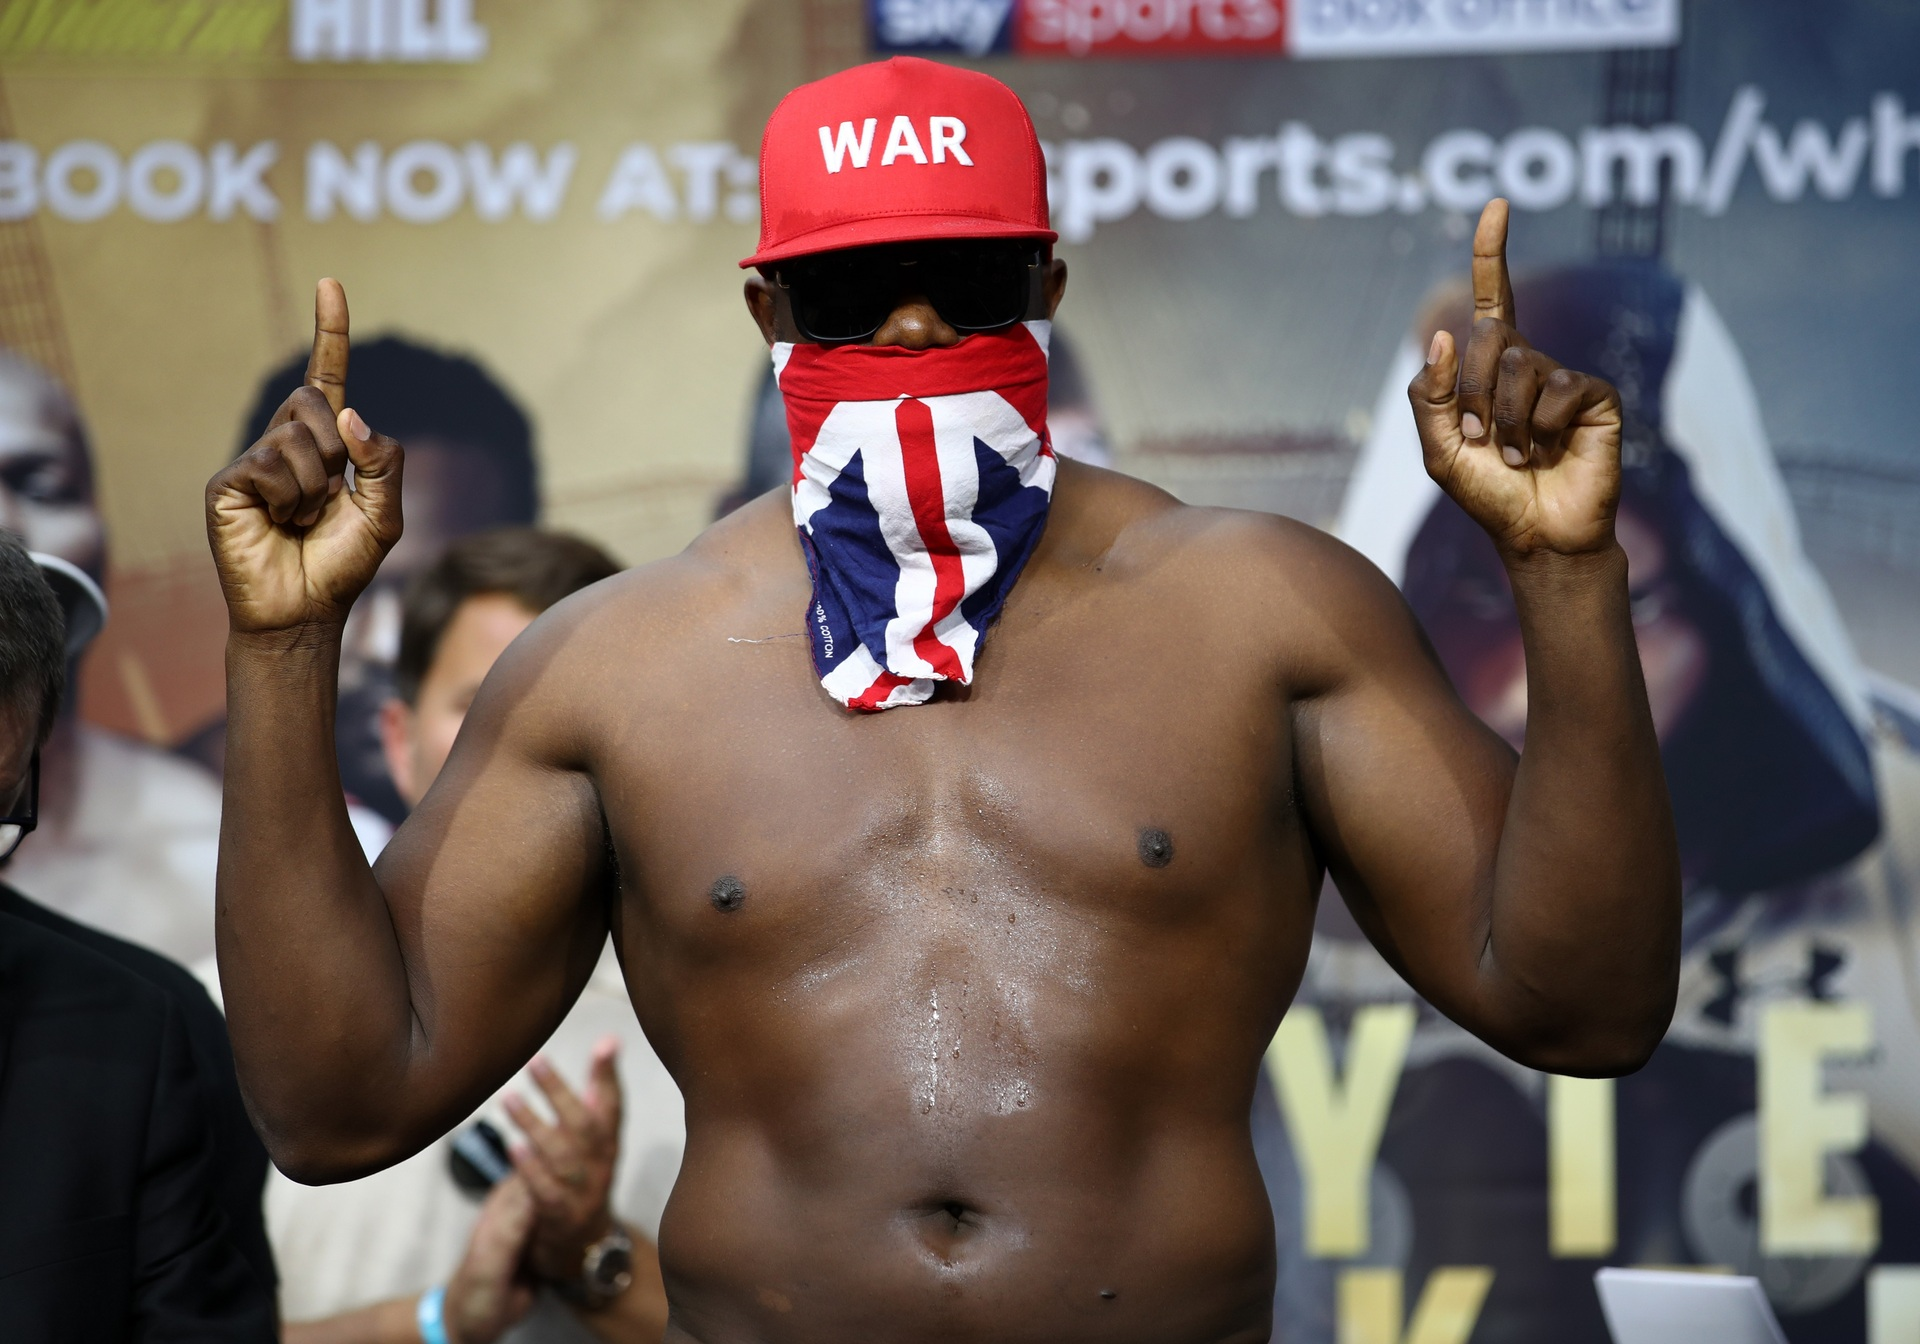 Boxing: A bore rather than war as Dereck Chisora stays on track for Joseph Parker fight